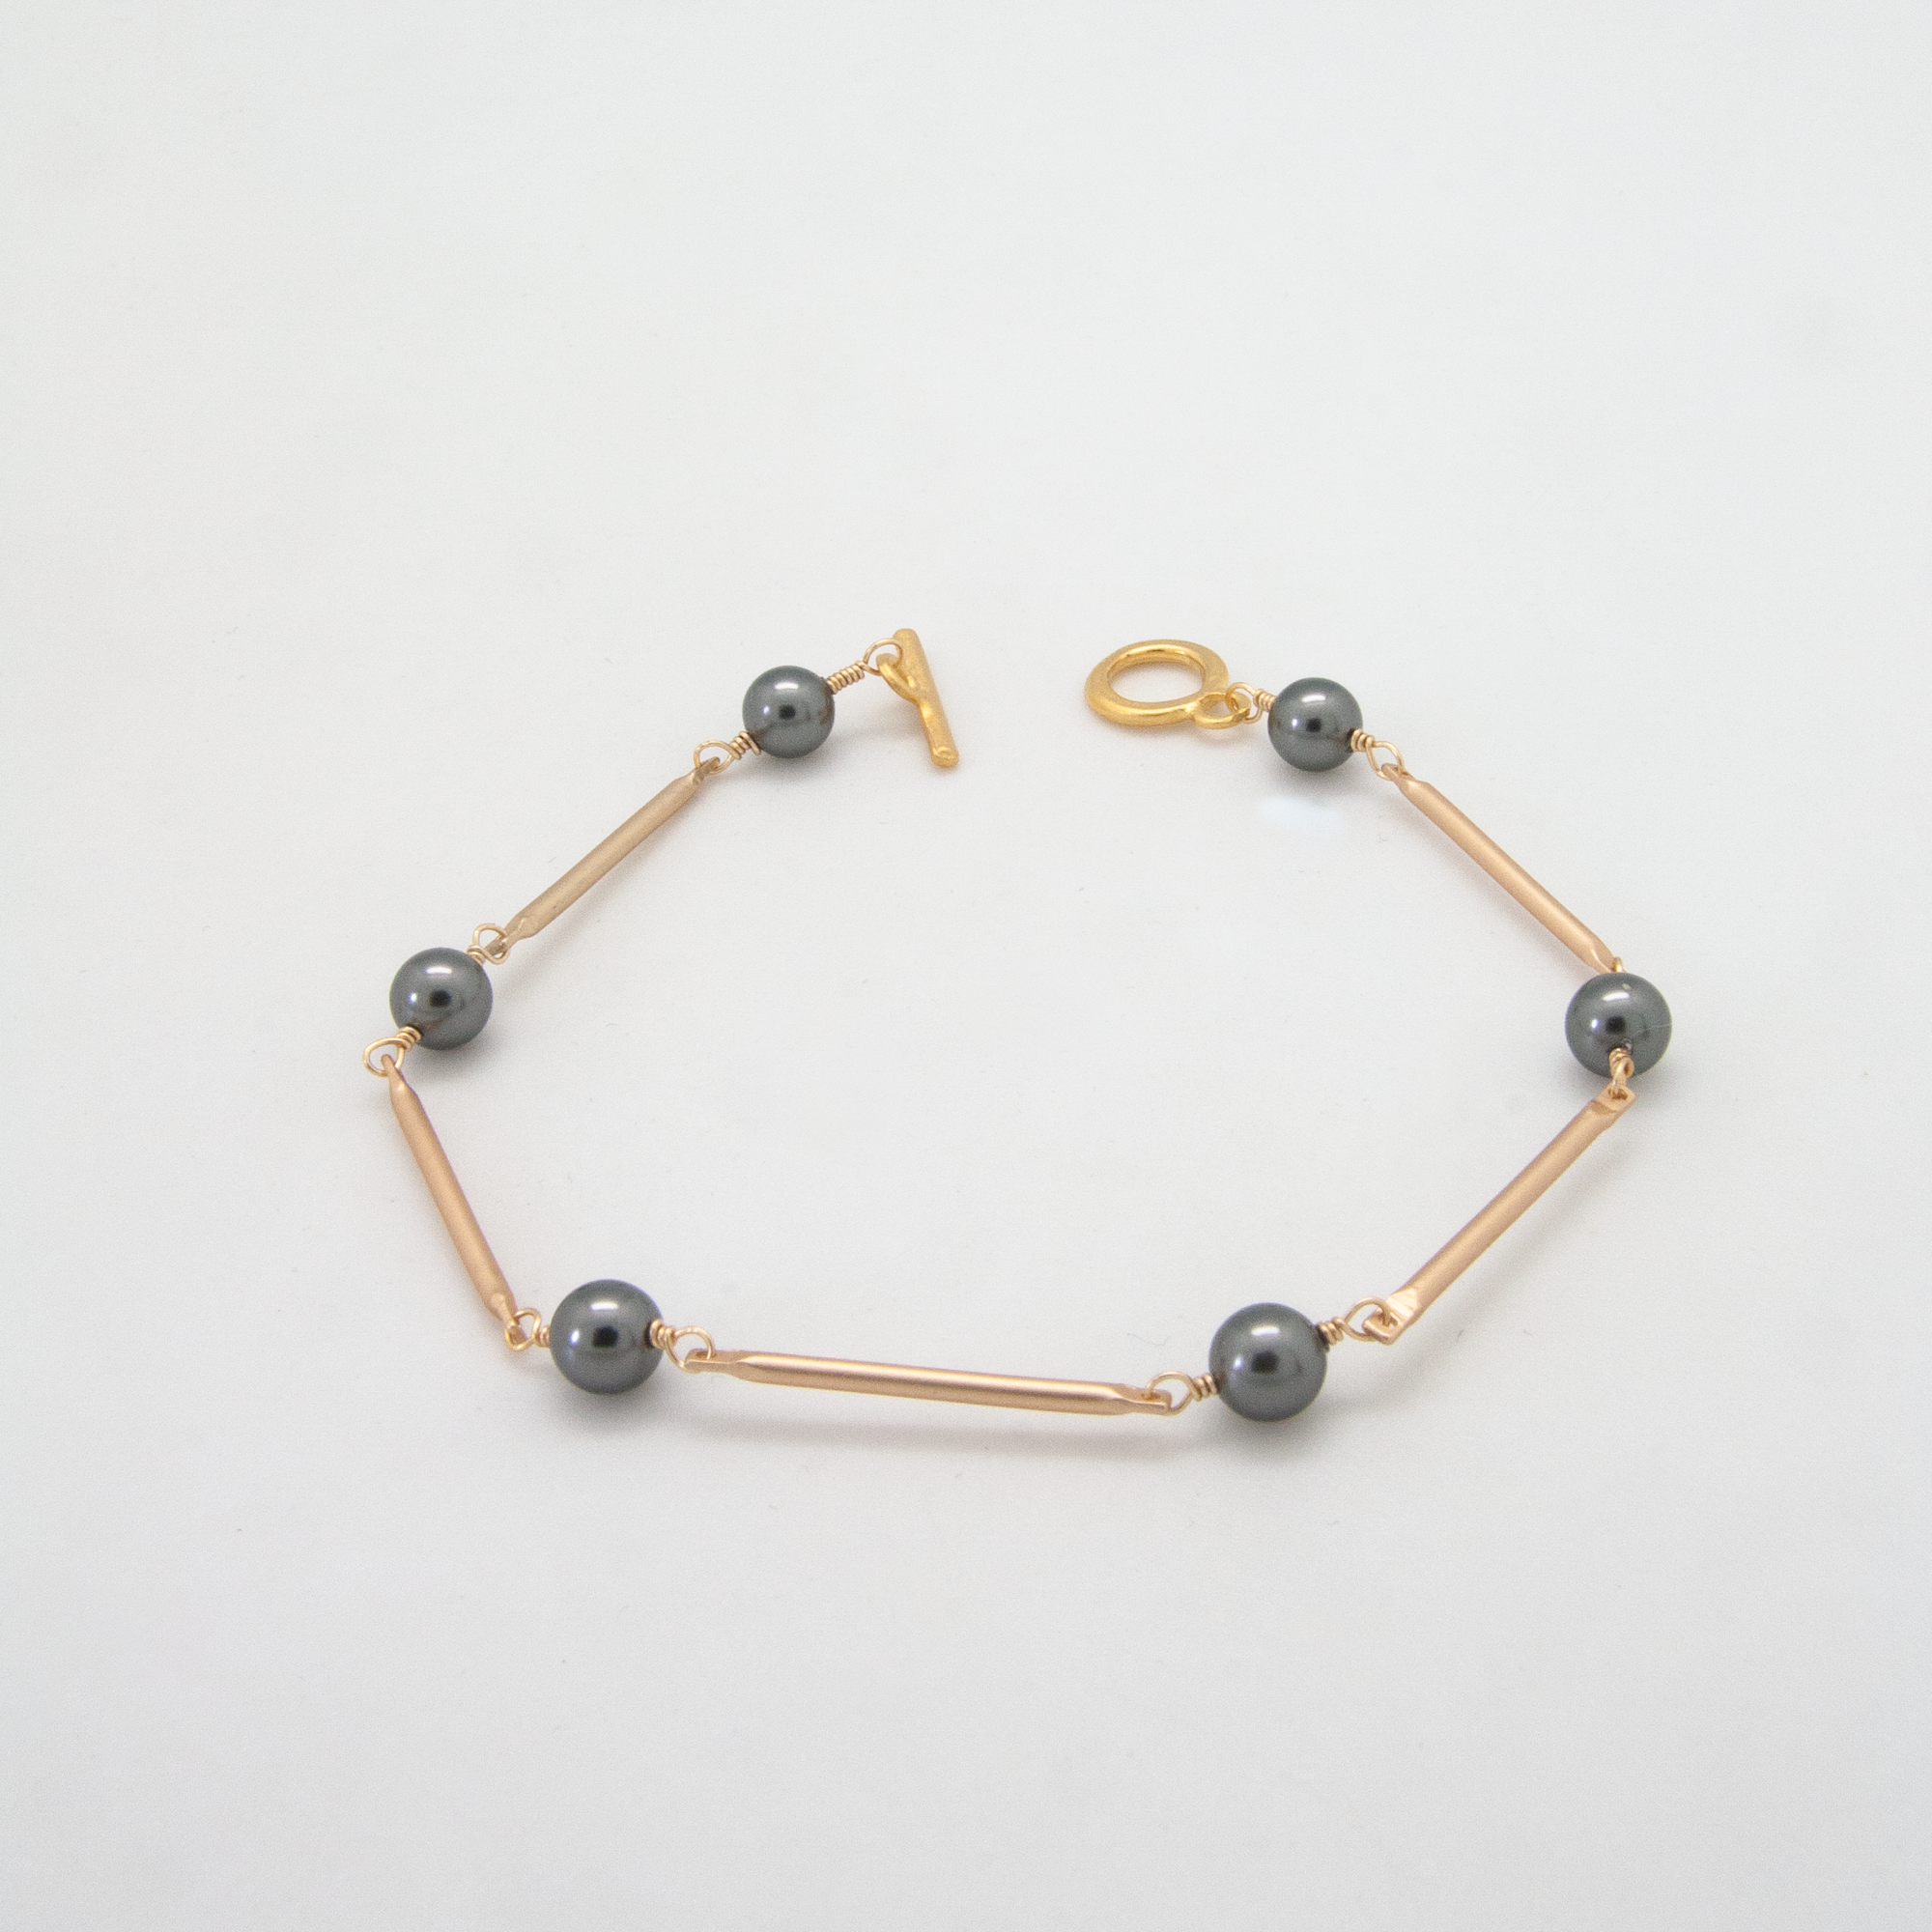 Matte gold bar bracelet with Swarovski crystal grey pearls by vivien walsh